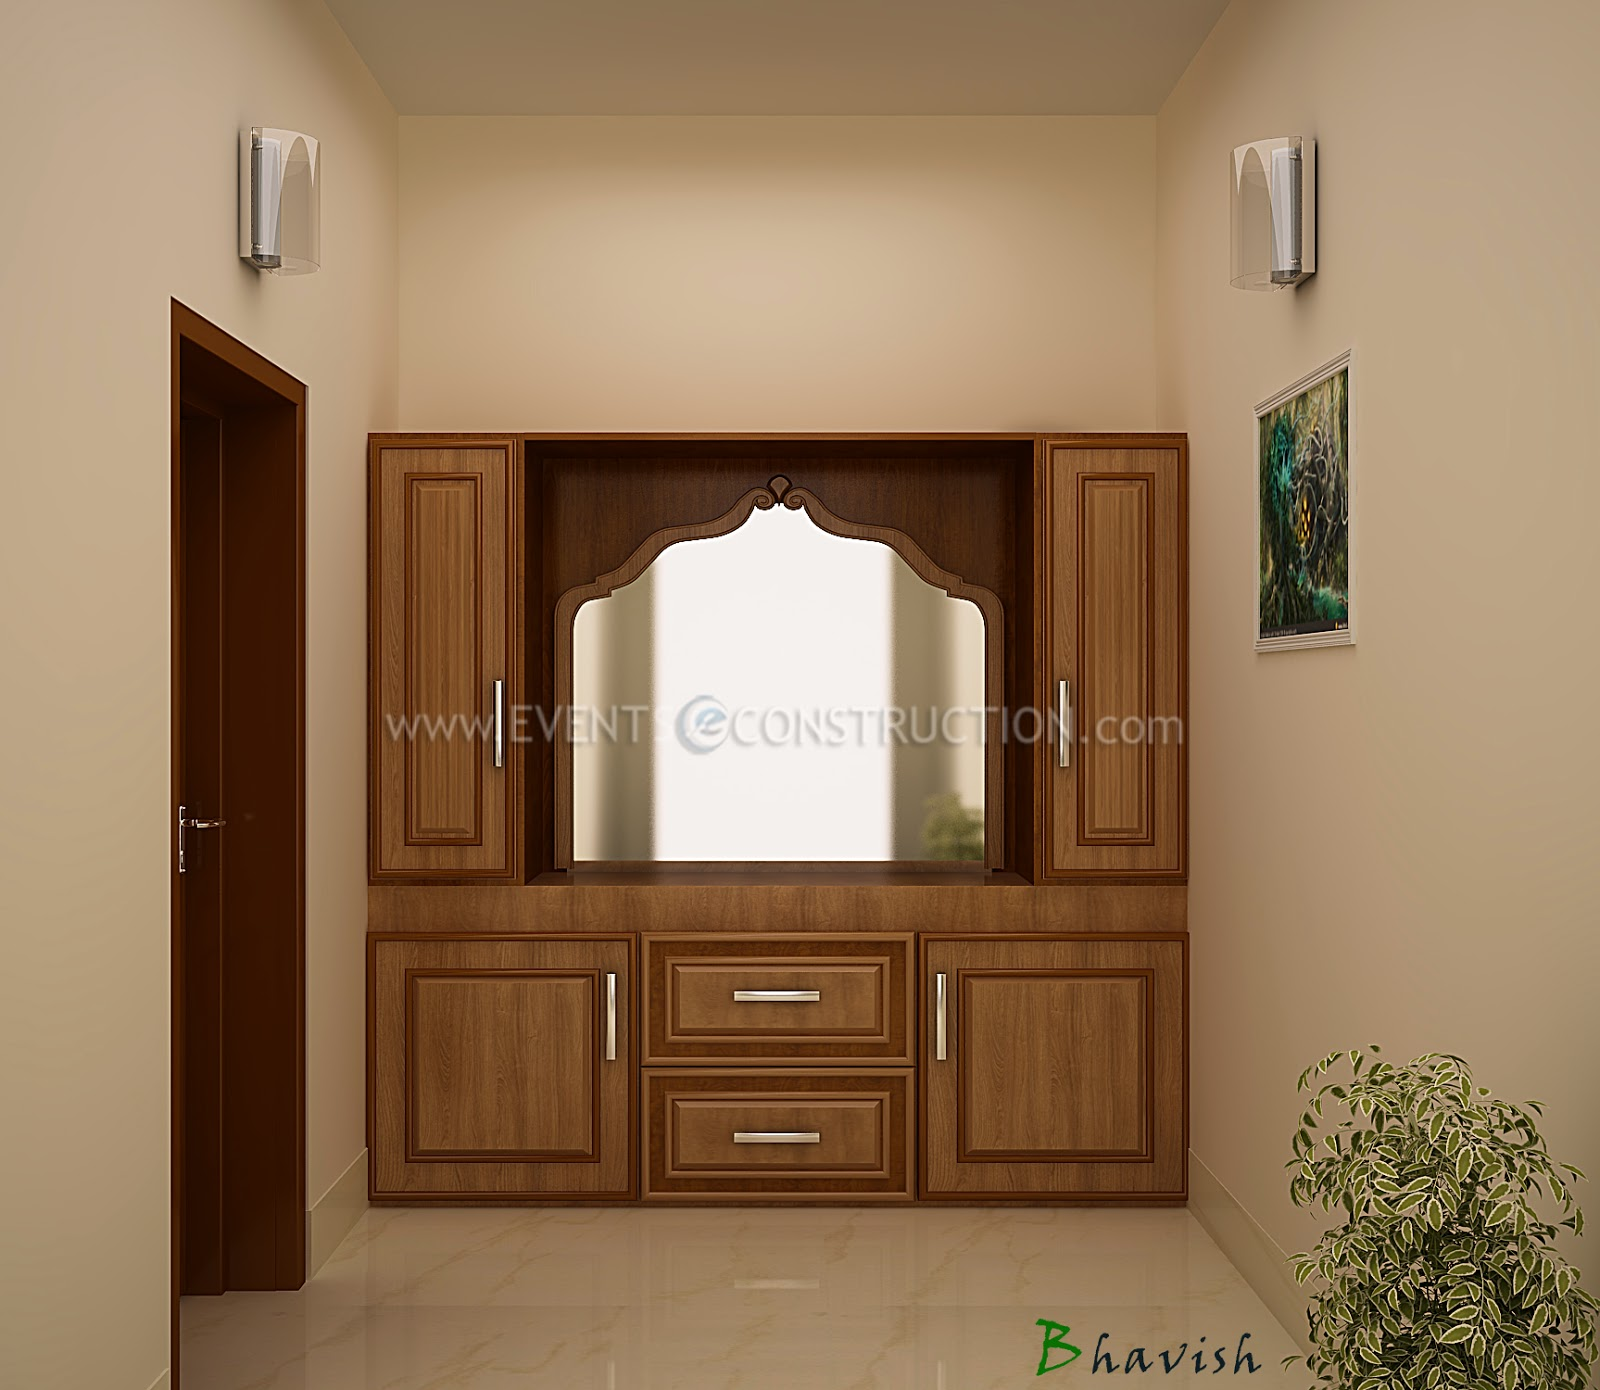 Evens Construction Pvt Ltd: Beautiful Dressing Table Design